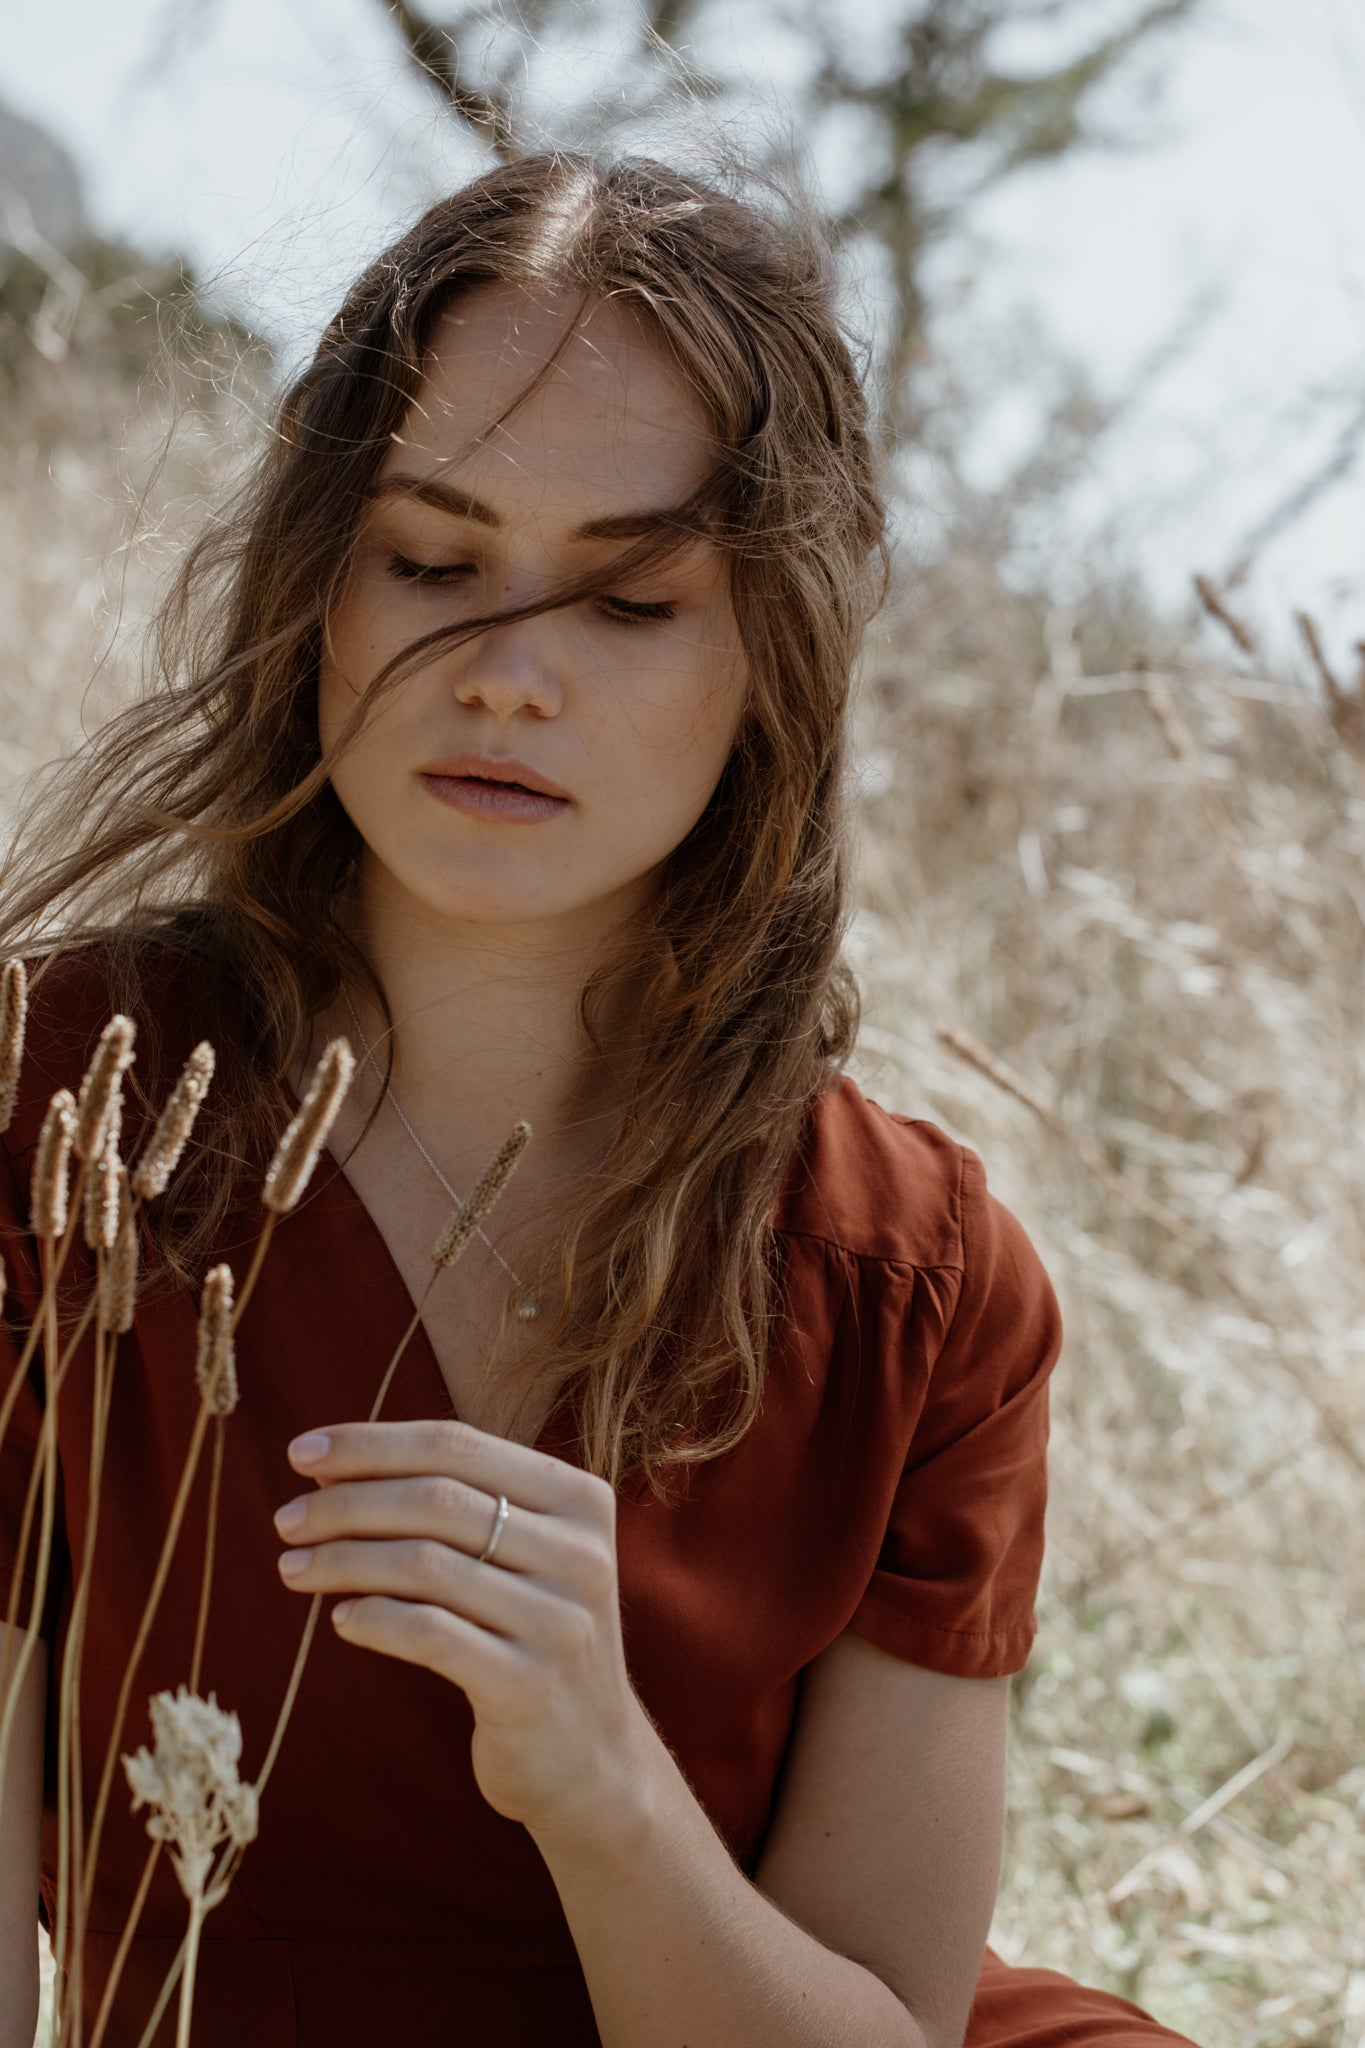 Woman in slow fashion dress in nature with sustainable, ecofriendly jewelry